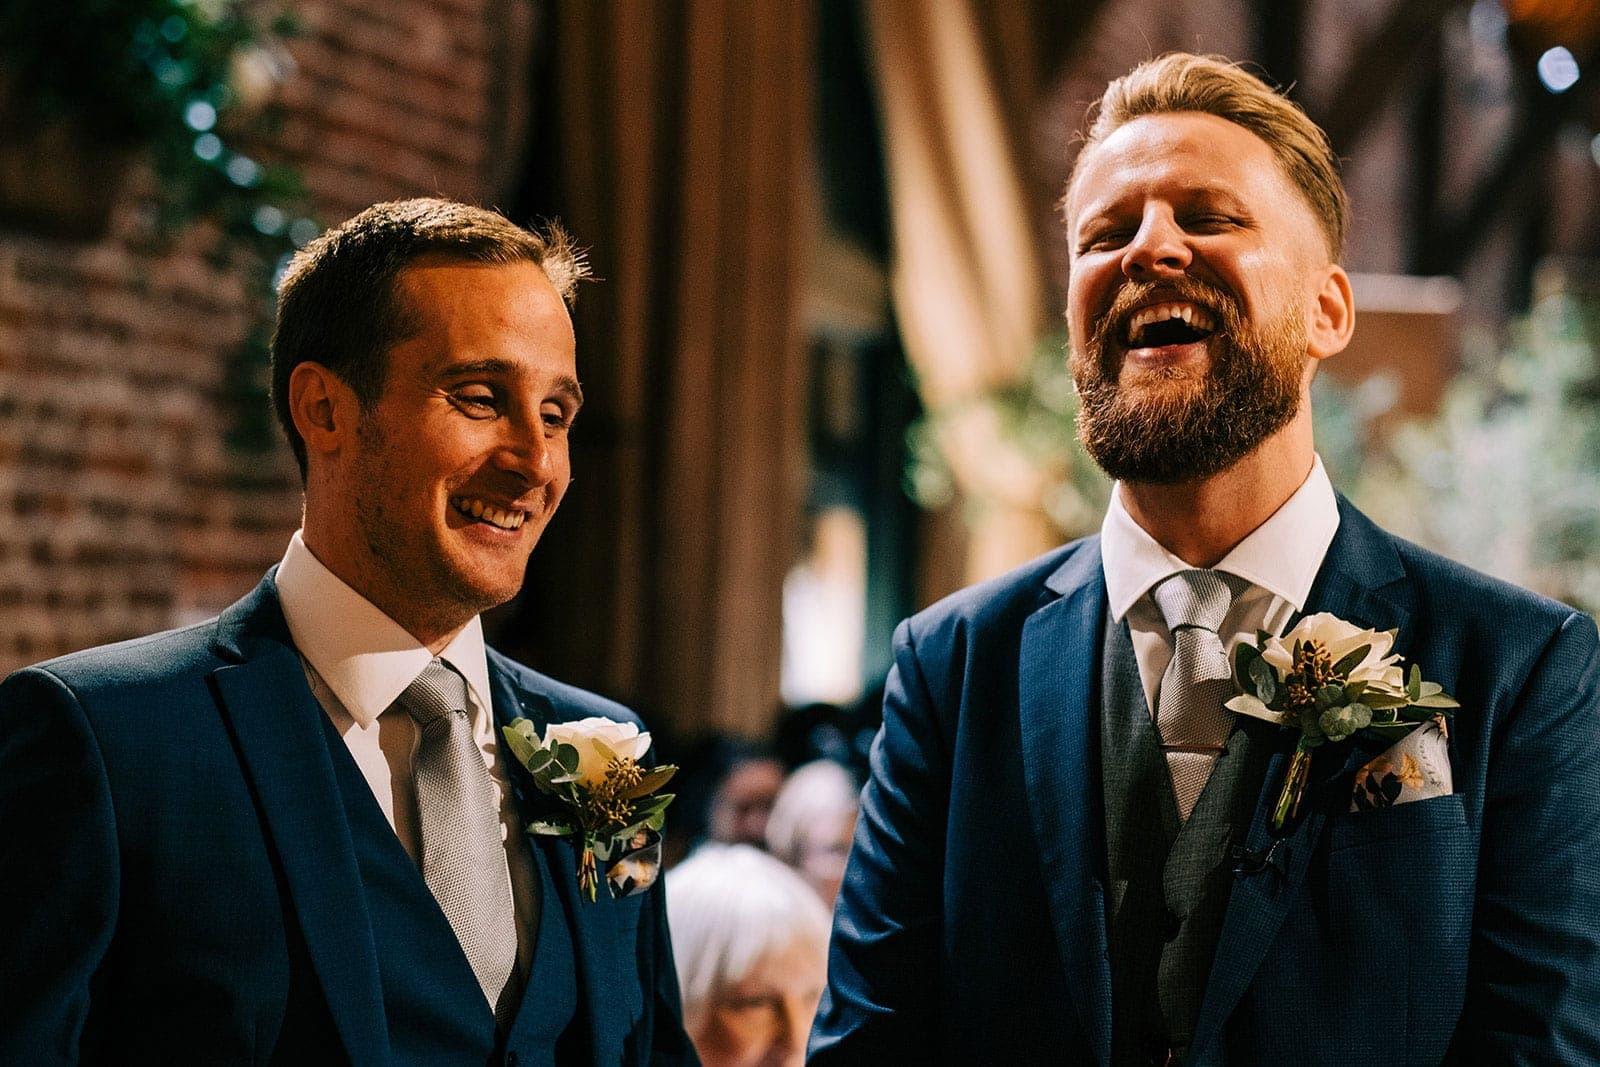 Jack and his best man laughing before the ceremony